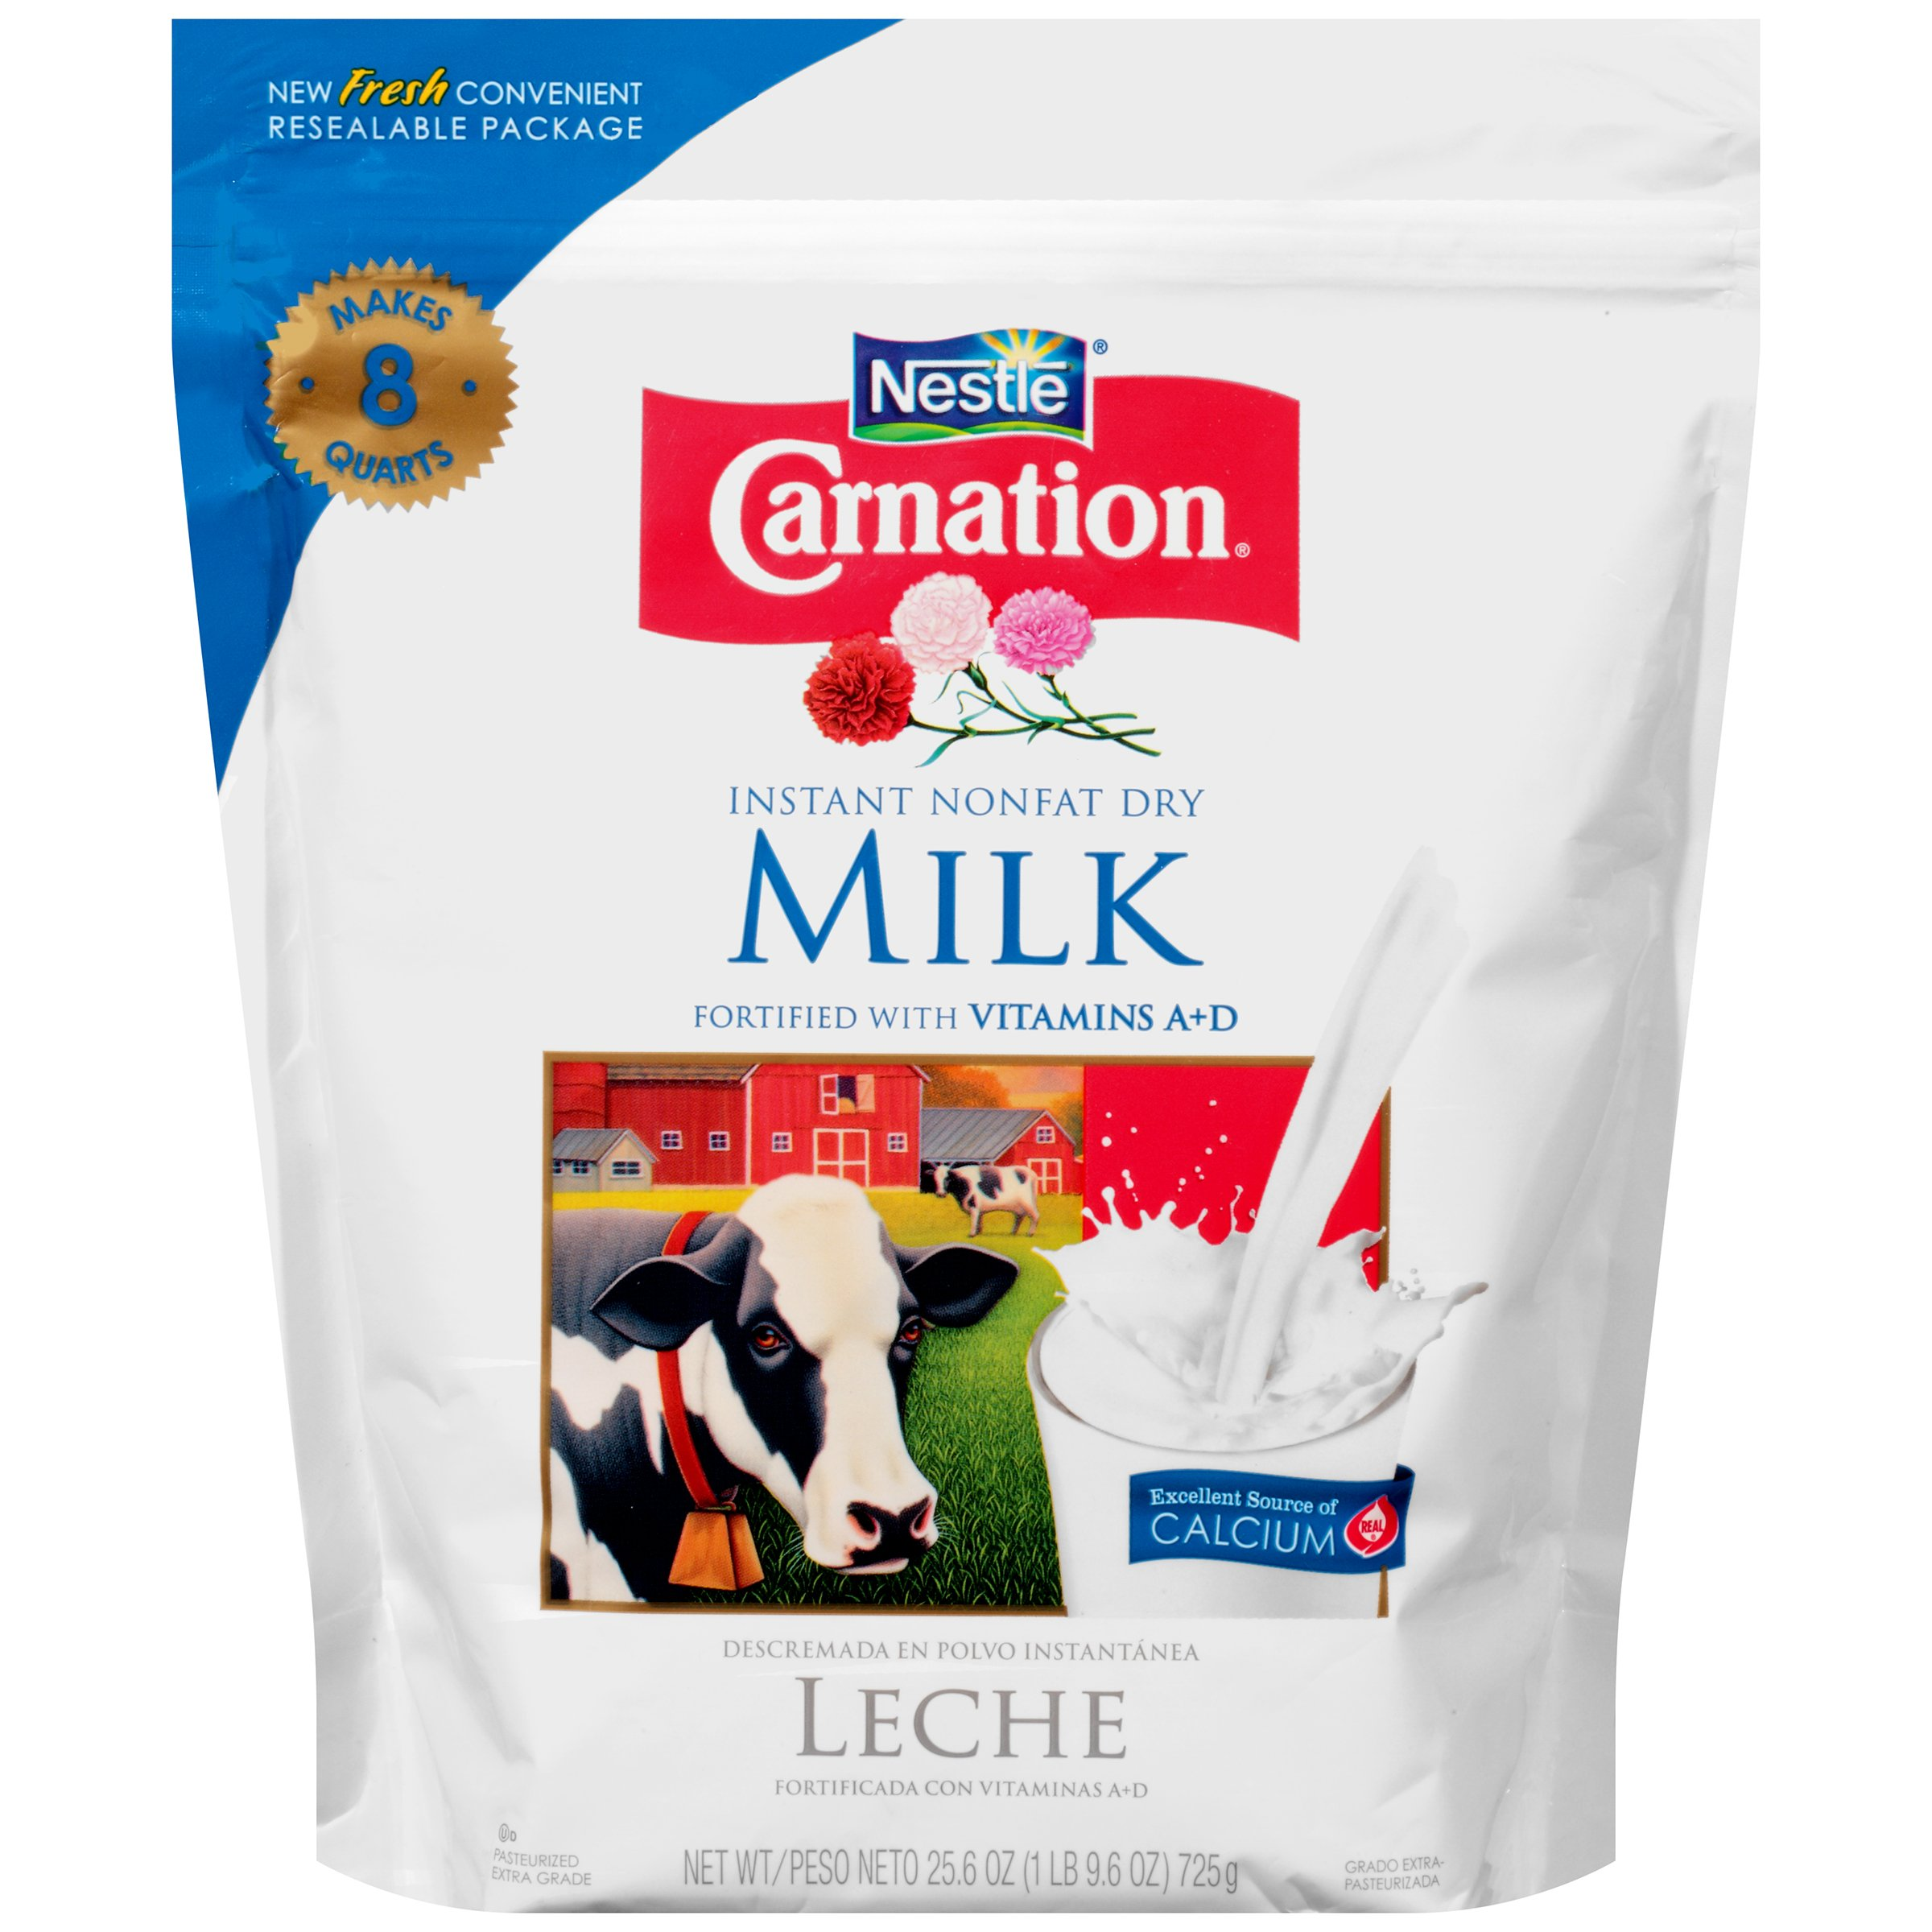 With what do dry milk